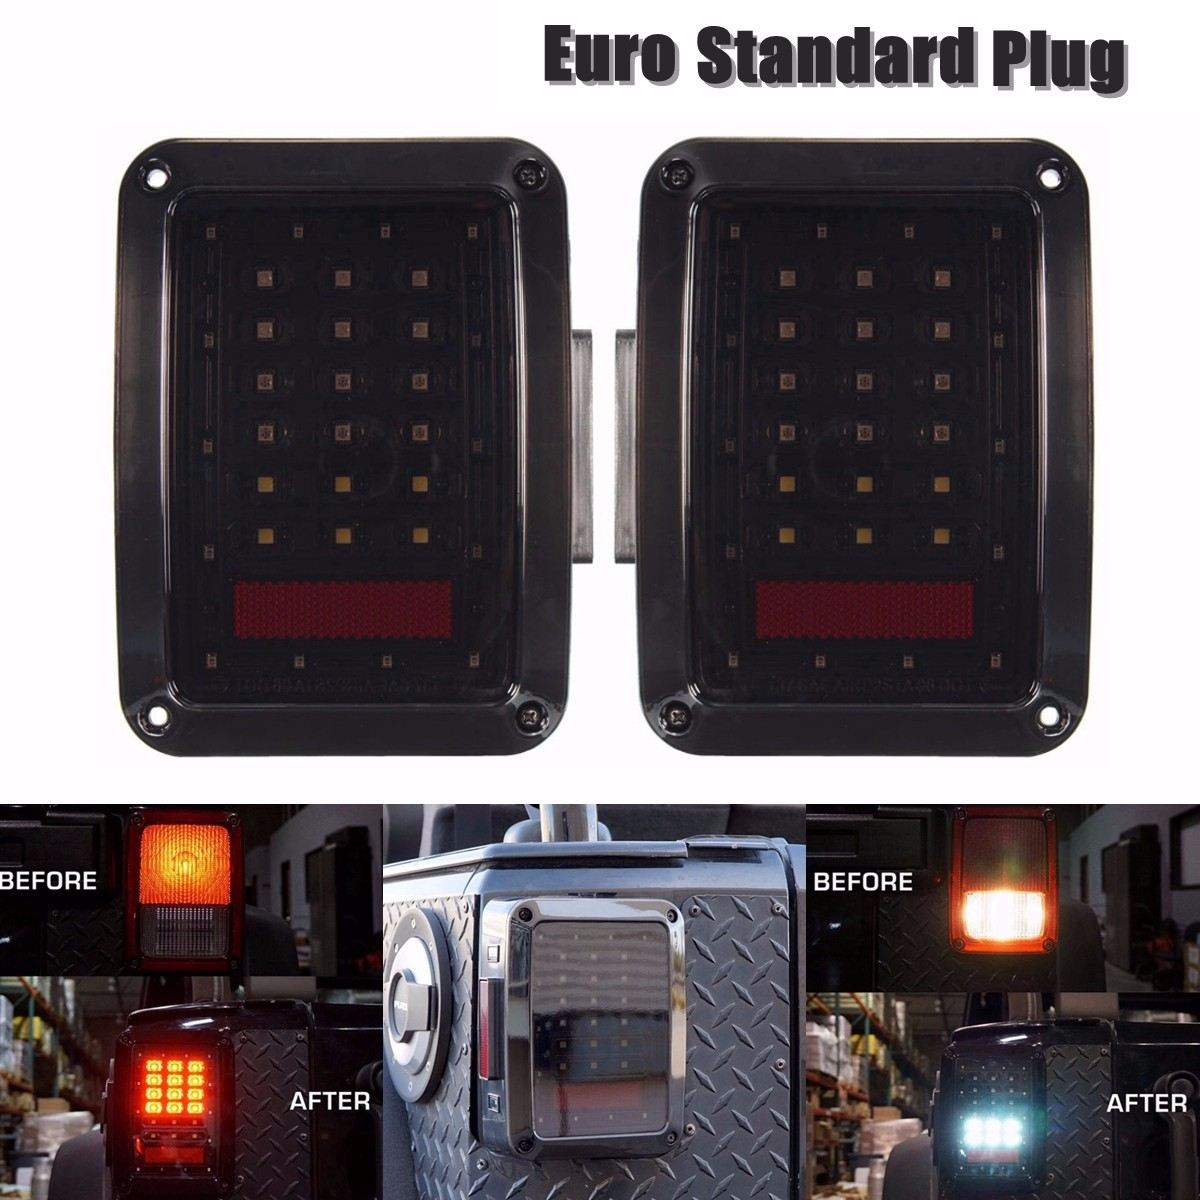 #682858528297 12V Smoked LED Tail Lights Driving Brake Reversing Lamp Turn Signal For Jeep/Wrangler JK 2012 2013 2014 2015 2016 windshield pillar mount grab handles for jeep wrangler jk and jku unlimited solid mount grab textured steel bar front fits jeep